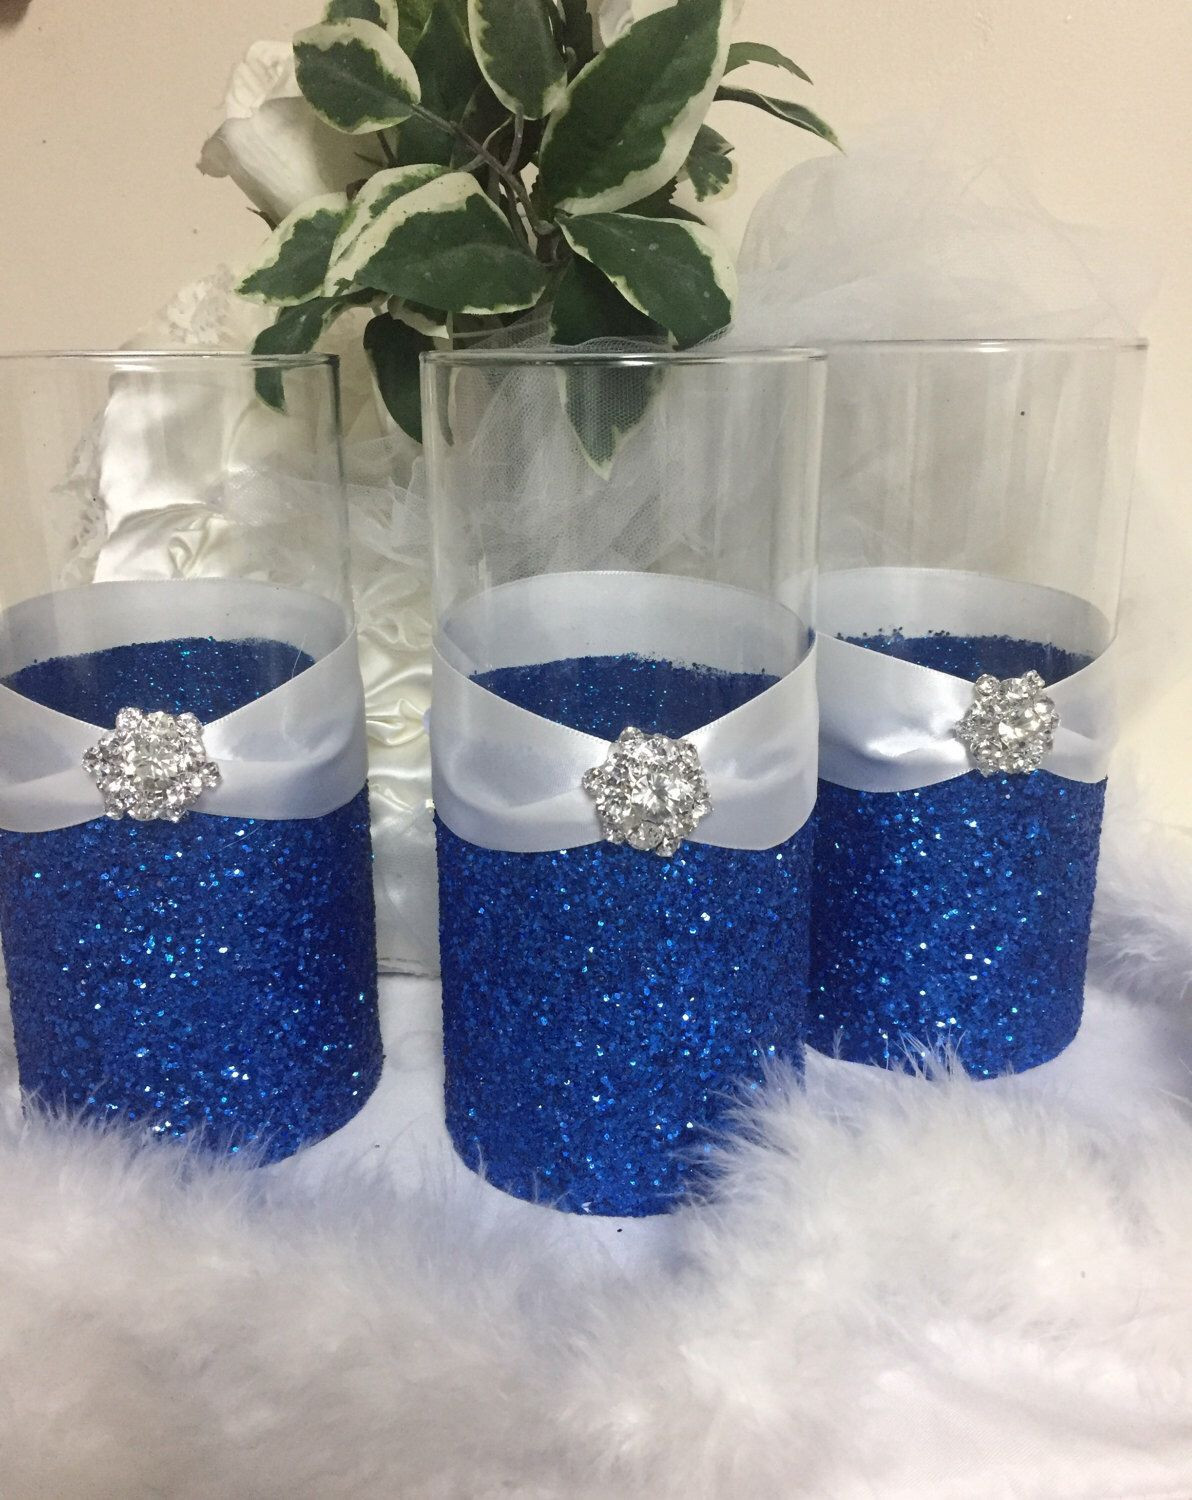 dale tiffany glass vase of royal blue vases photograph wedding centerpiece glitter vase bridal with regard to gallery of royal blue vases